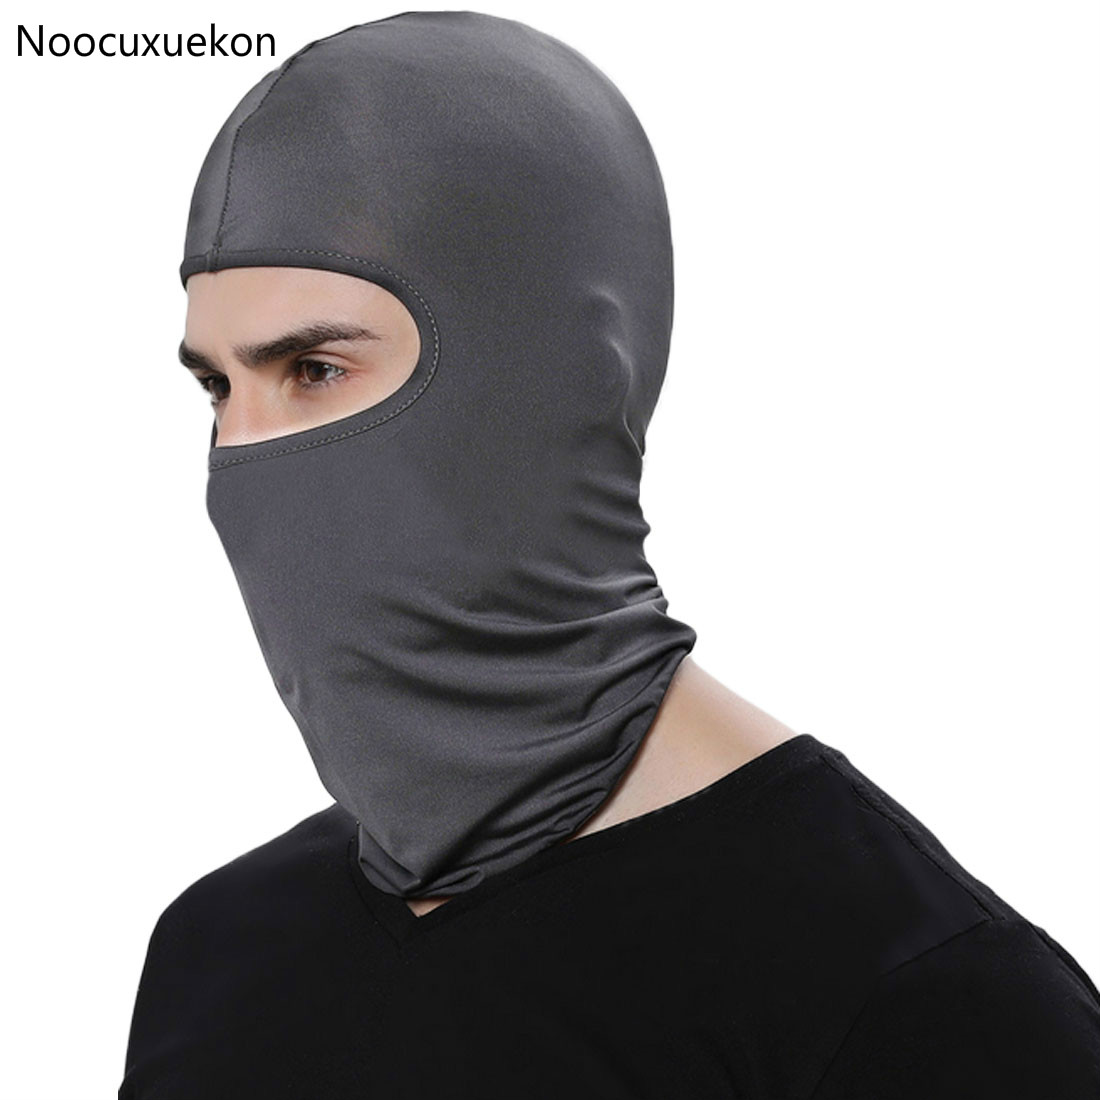 Hot Selling Motorcycle Face Mask Cycling Ski Neck Protecting Outdoor Balaclava Full Face Mask Ultra Thin Breathable Windproof full face lycra protection balaclava headwear neck cycling motorcycle mask